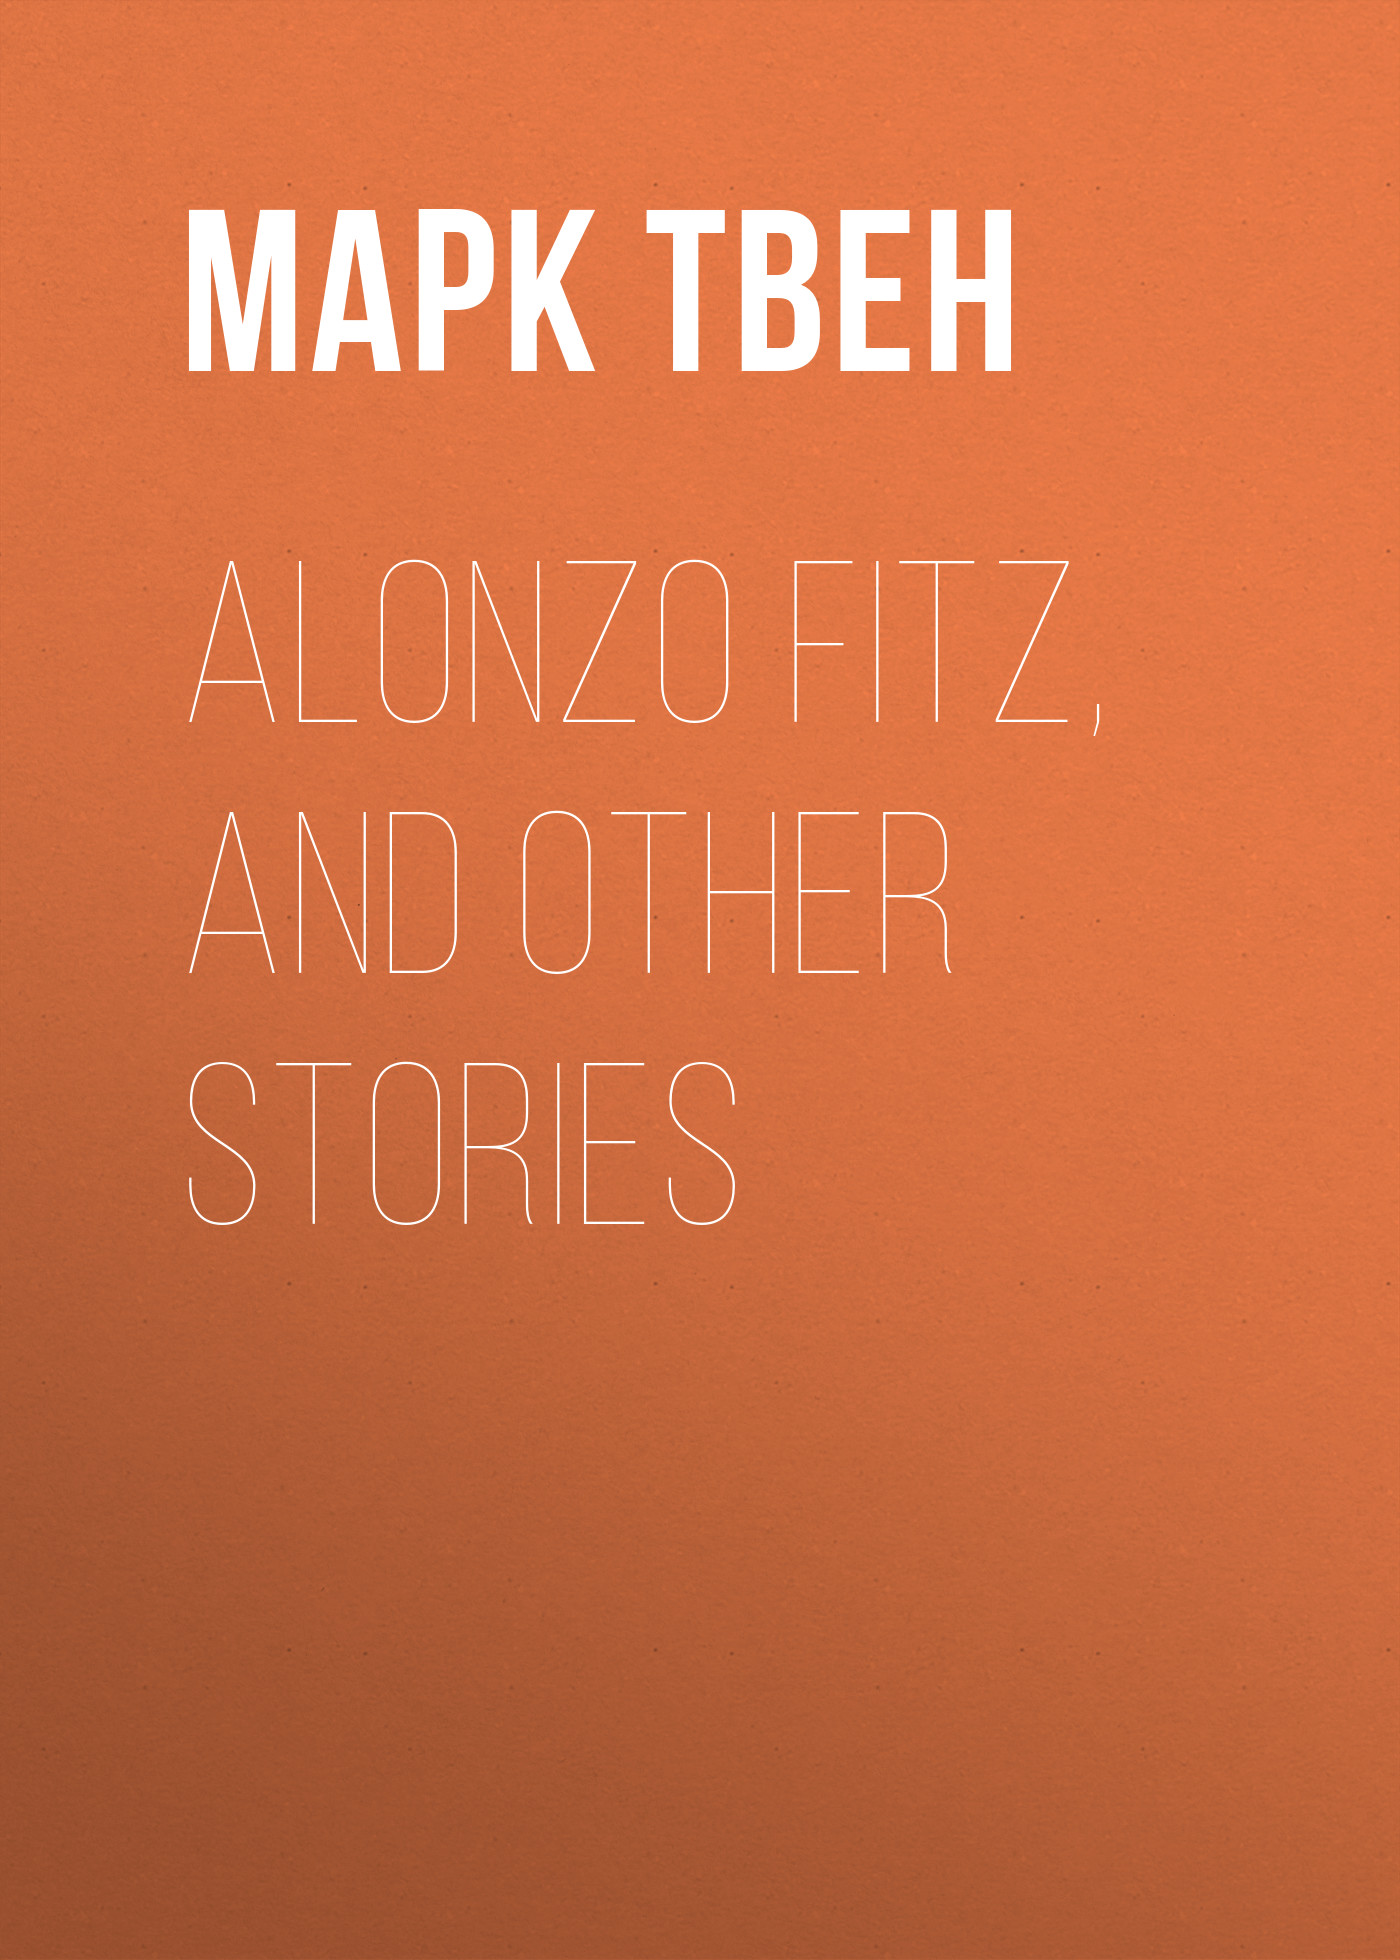 Марк Твен Alonzo Fitz, and Other Stories марк твен sketches new and old